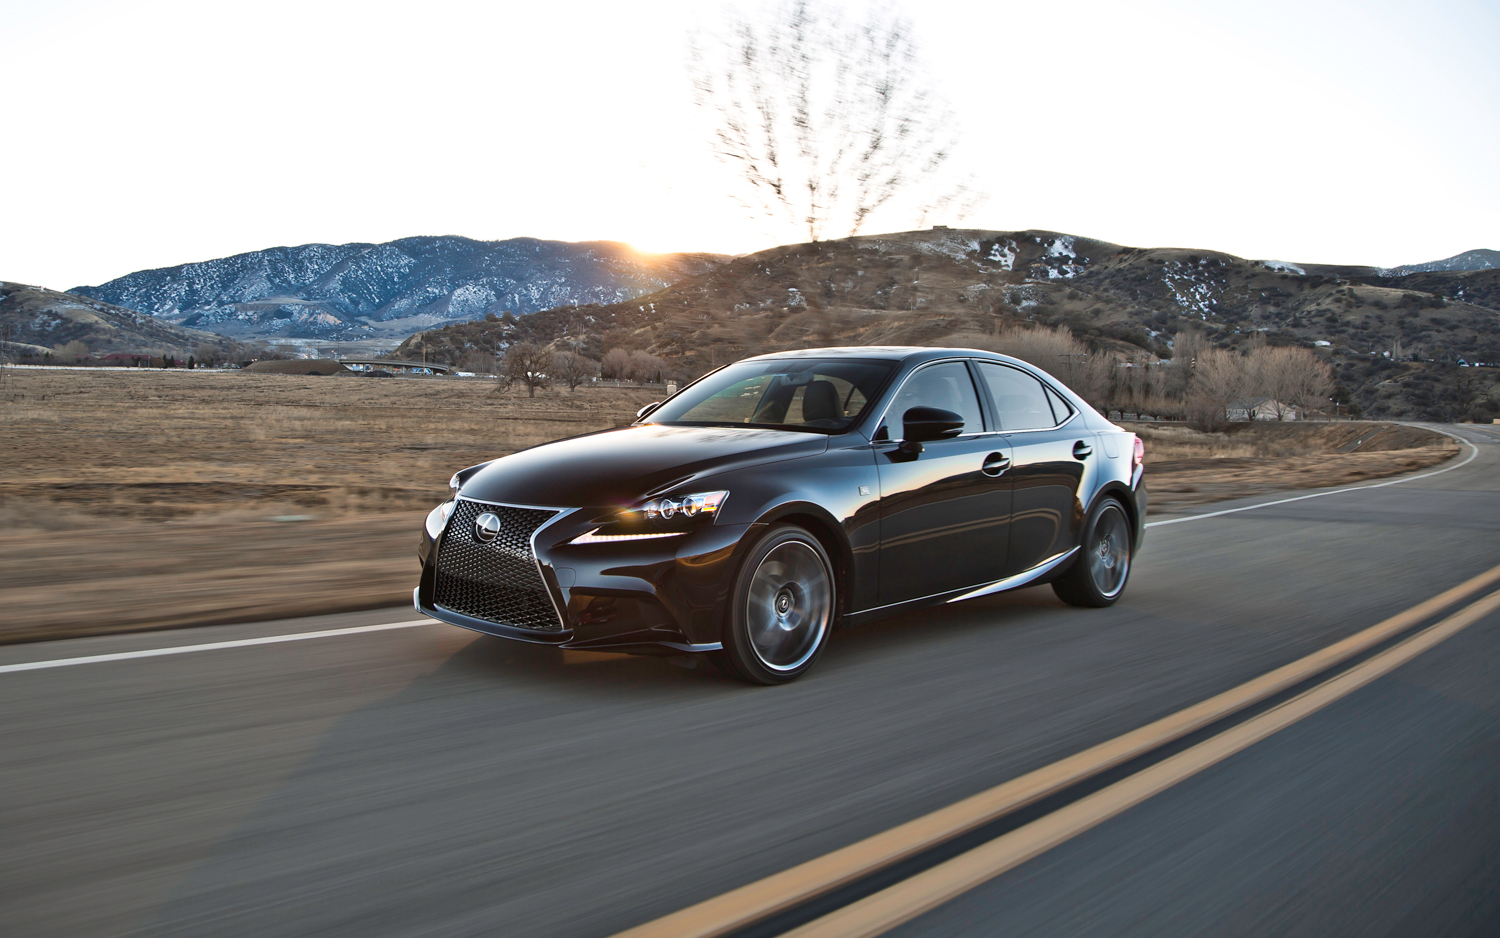 motor trend drives the 2014 lexus is f sport lexus enthusiast. Black Bedroom Furniture Sets. Home Design Ideas